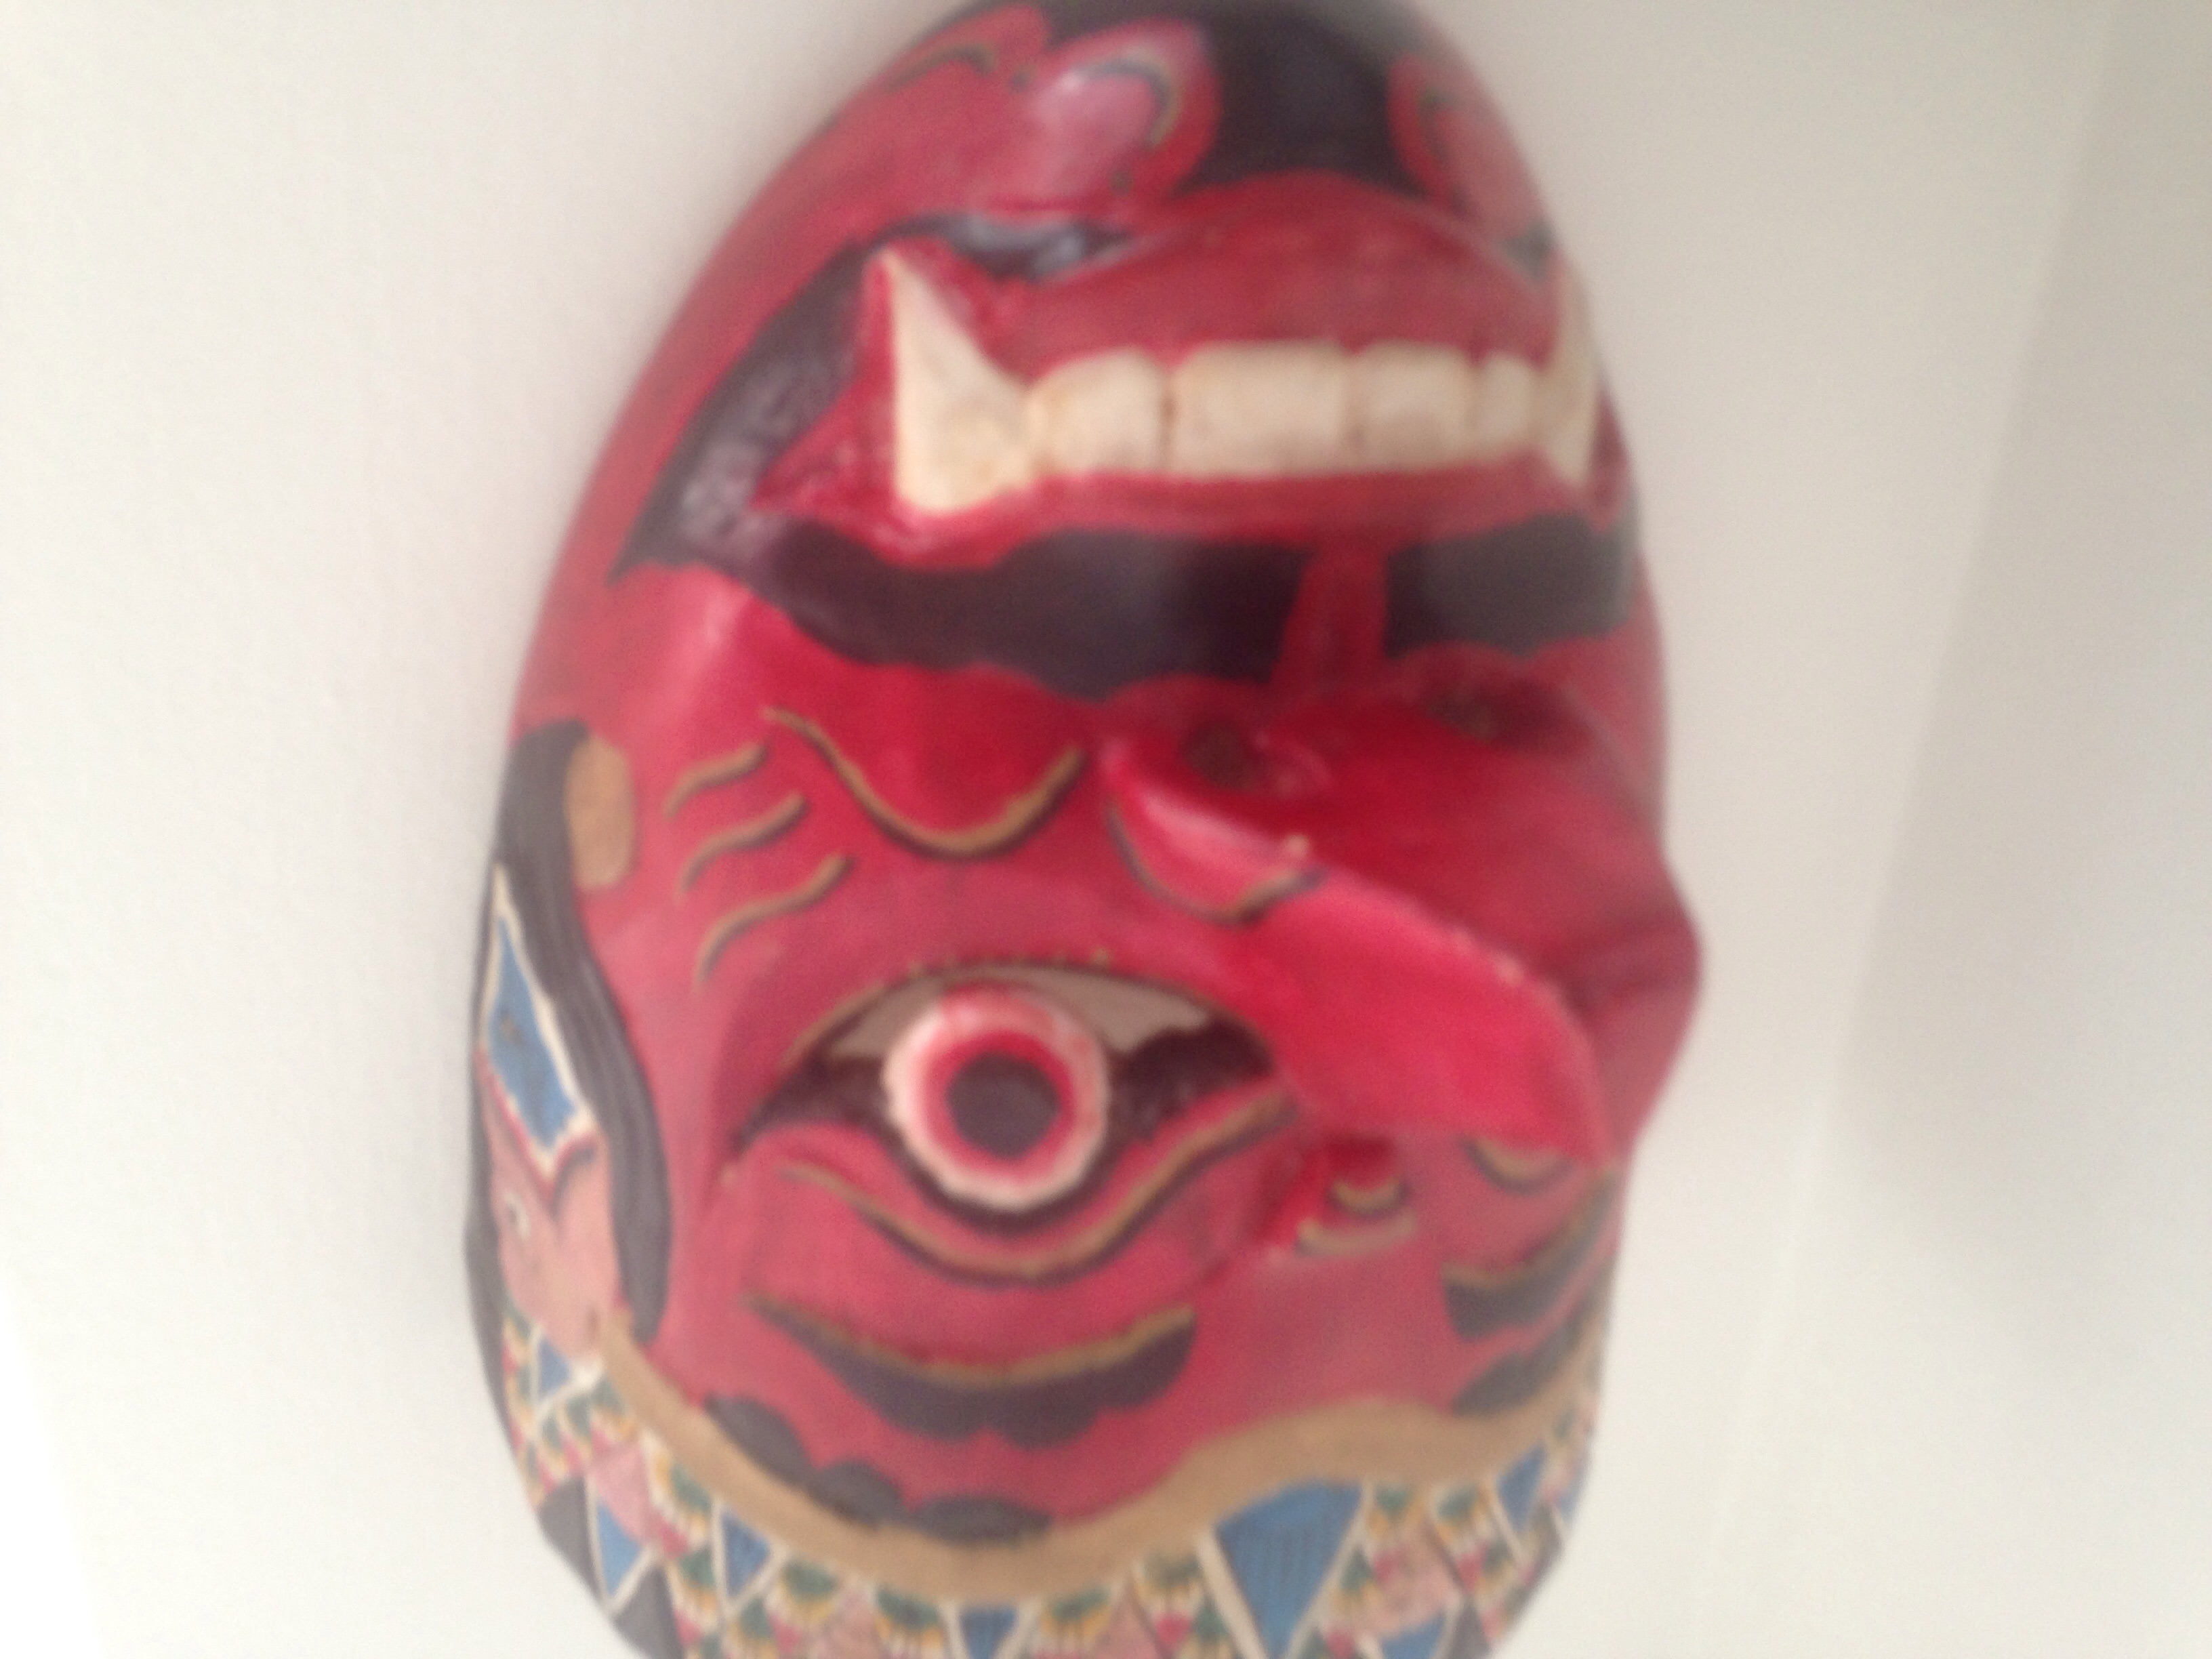 Red mask made of wood hand crafted in Yogyakarta Yogyakarta is regarded as an important centre for classical Javanese fine arts and culture such as ballet, batik textiles, drama, literature, music, poetry, silversmithing, visual arts, and wayang puppetry